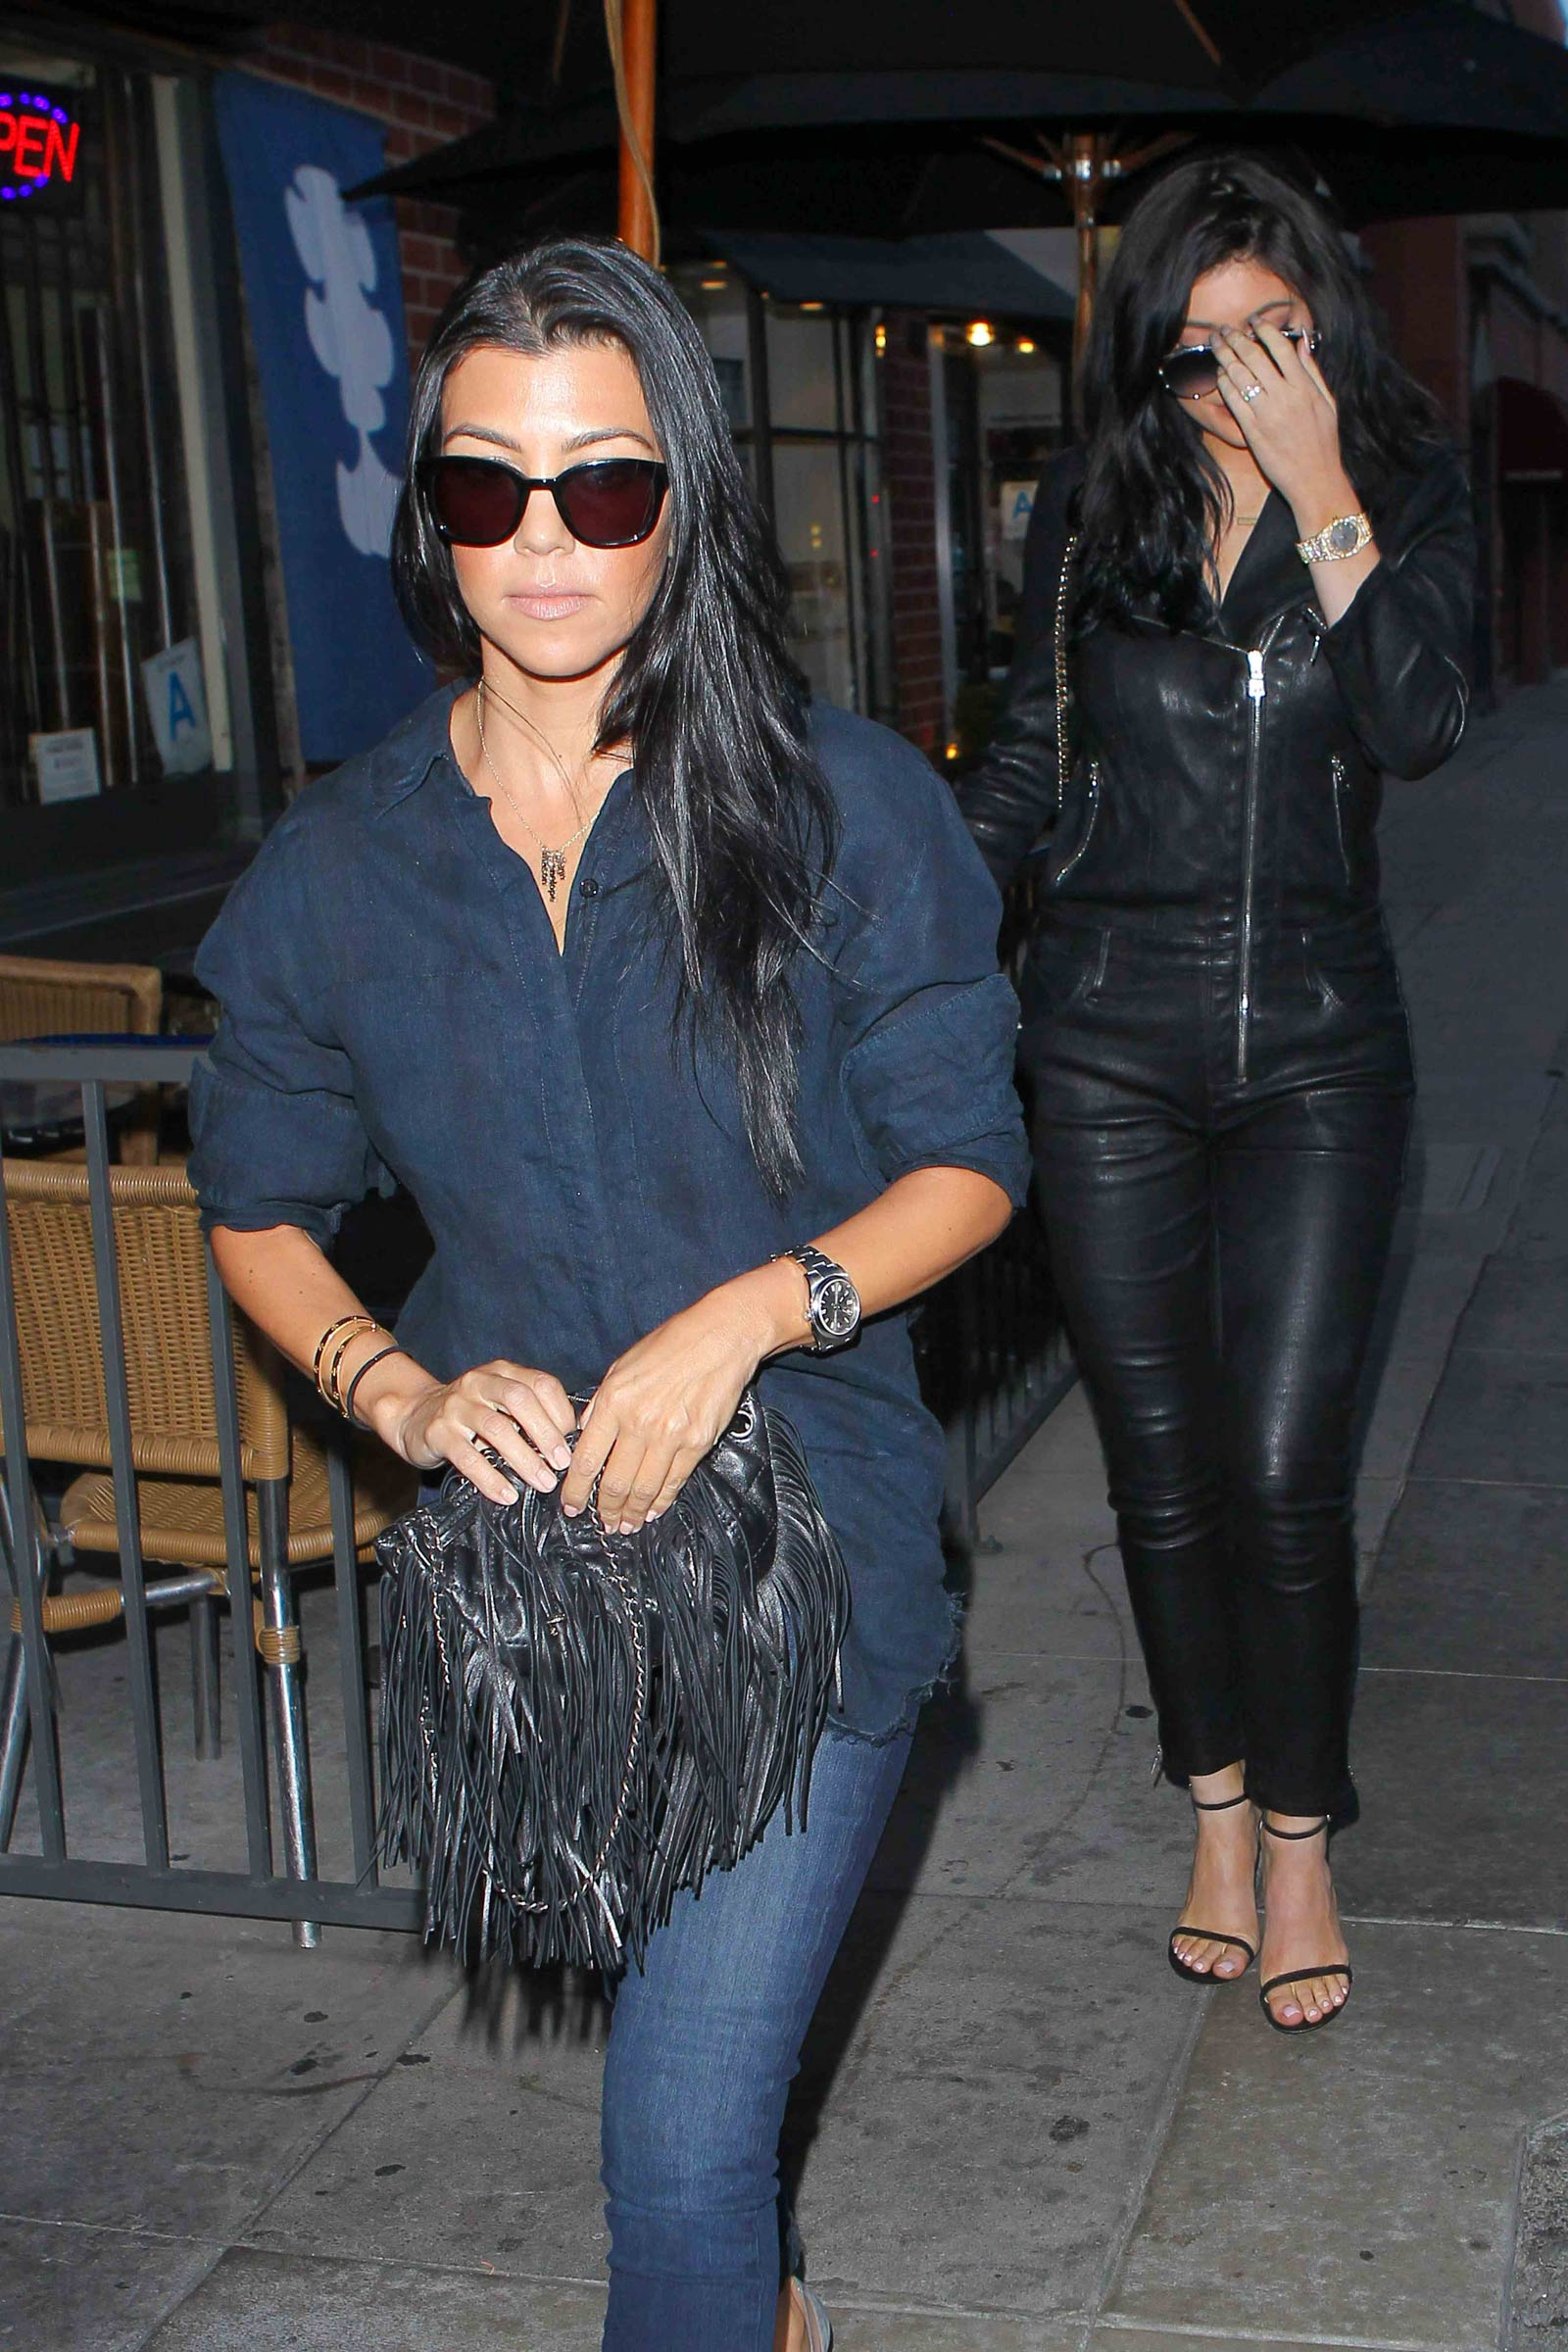 Kylie Jenner and Kourtney Kardashian out in Beverly Hills